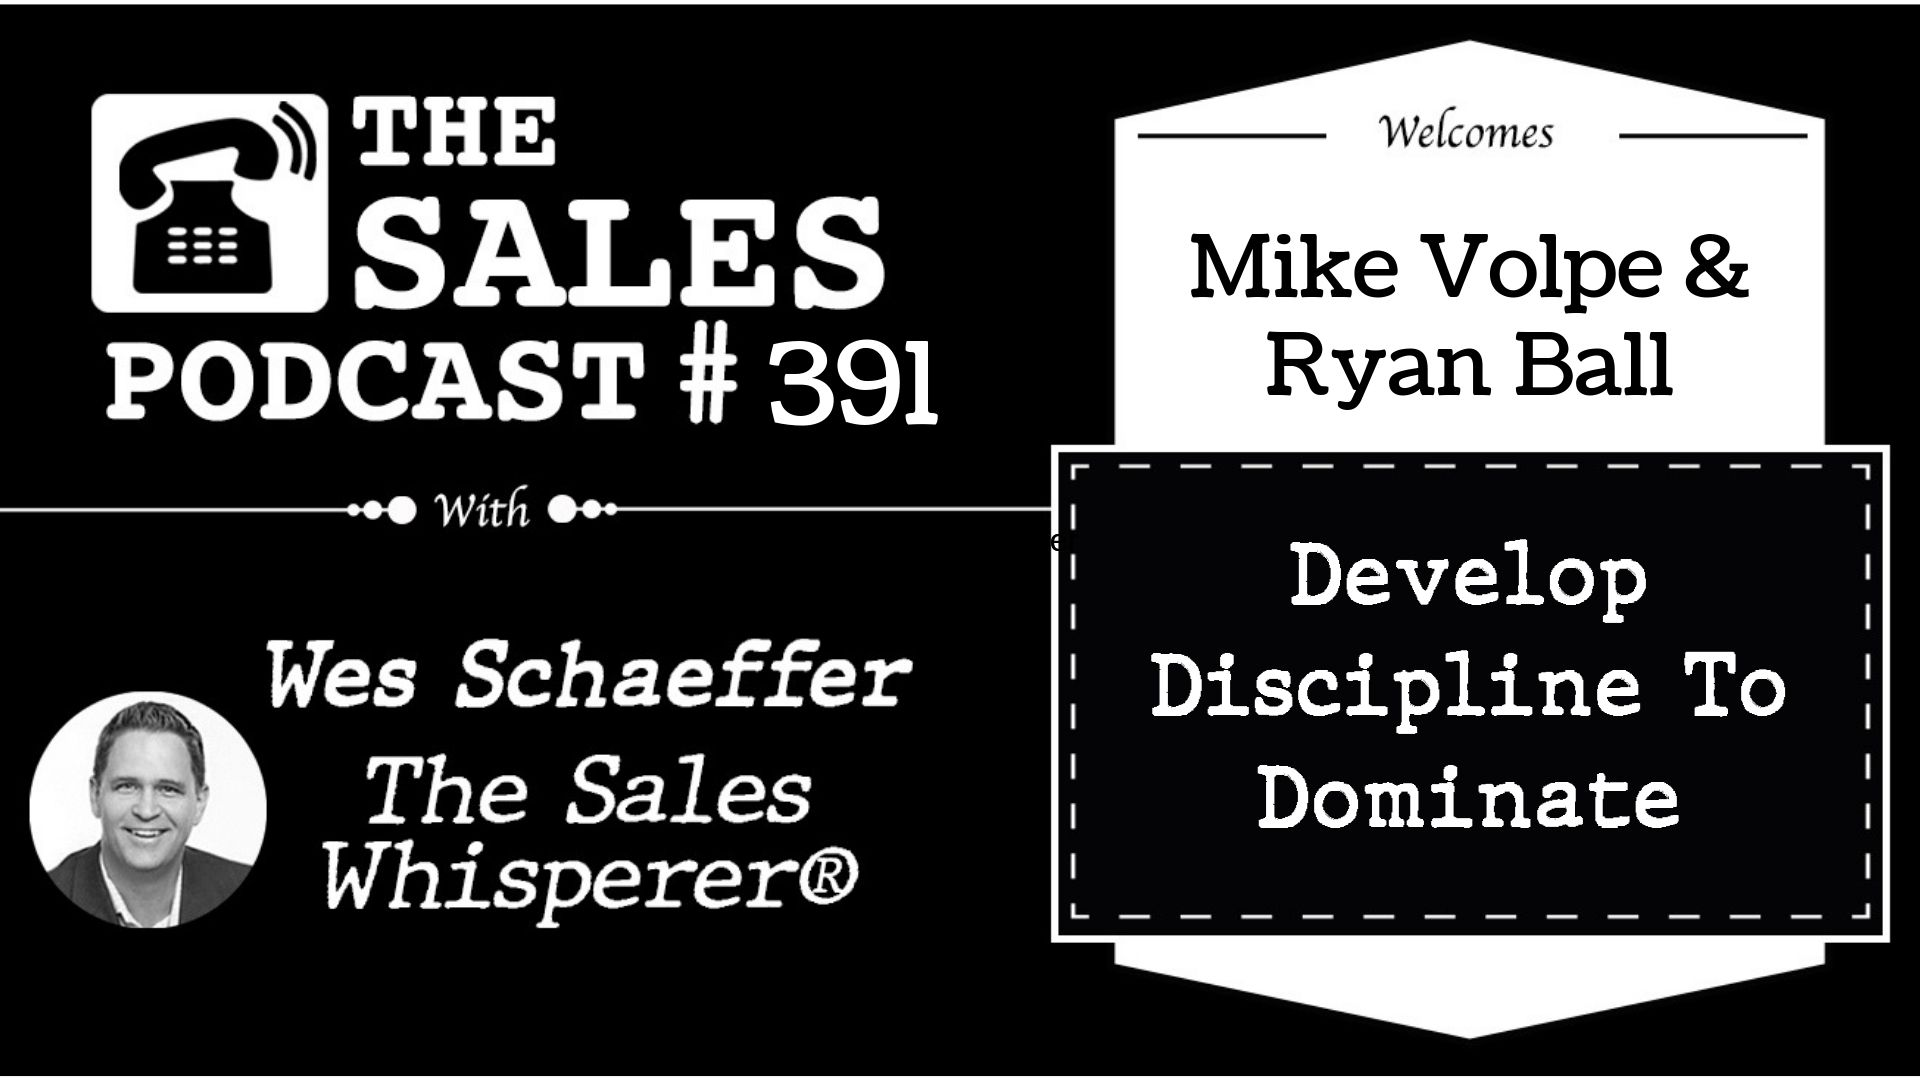 The Key To Identifying Opportunities To Scale Fast, Mike Volpe & Ryan Ball